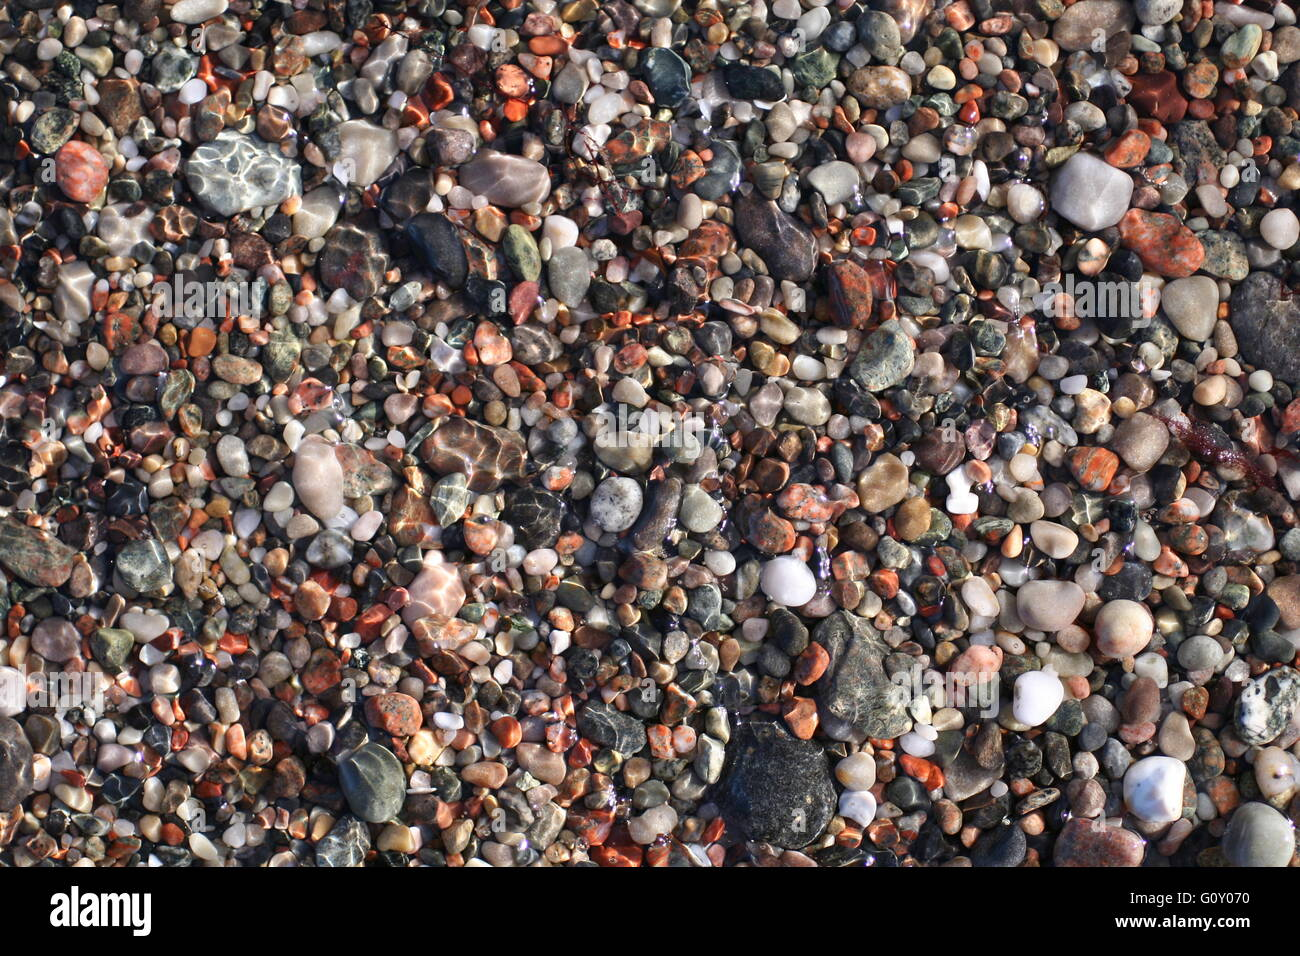 Pebble covered beach on Iona, Inner Hebrides, Scotland - Stock Image